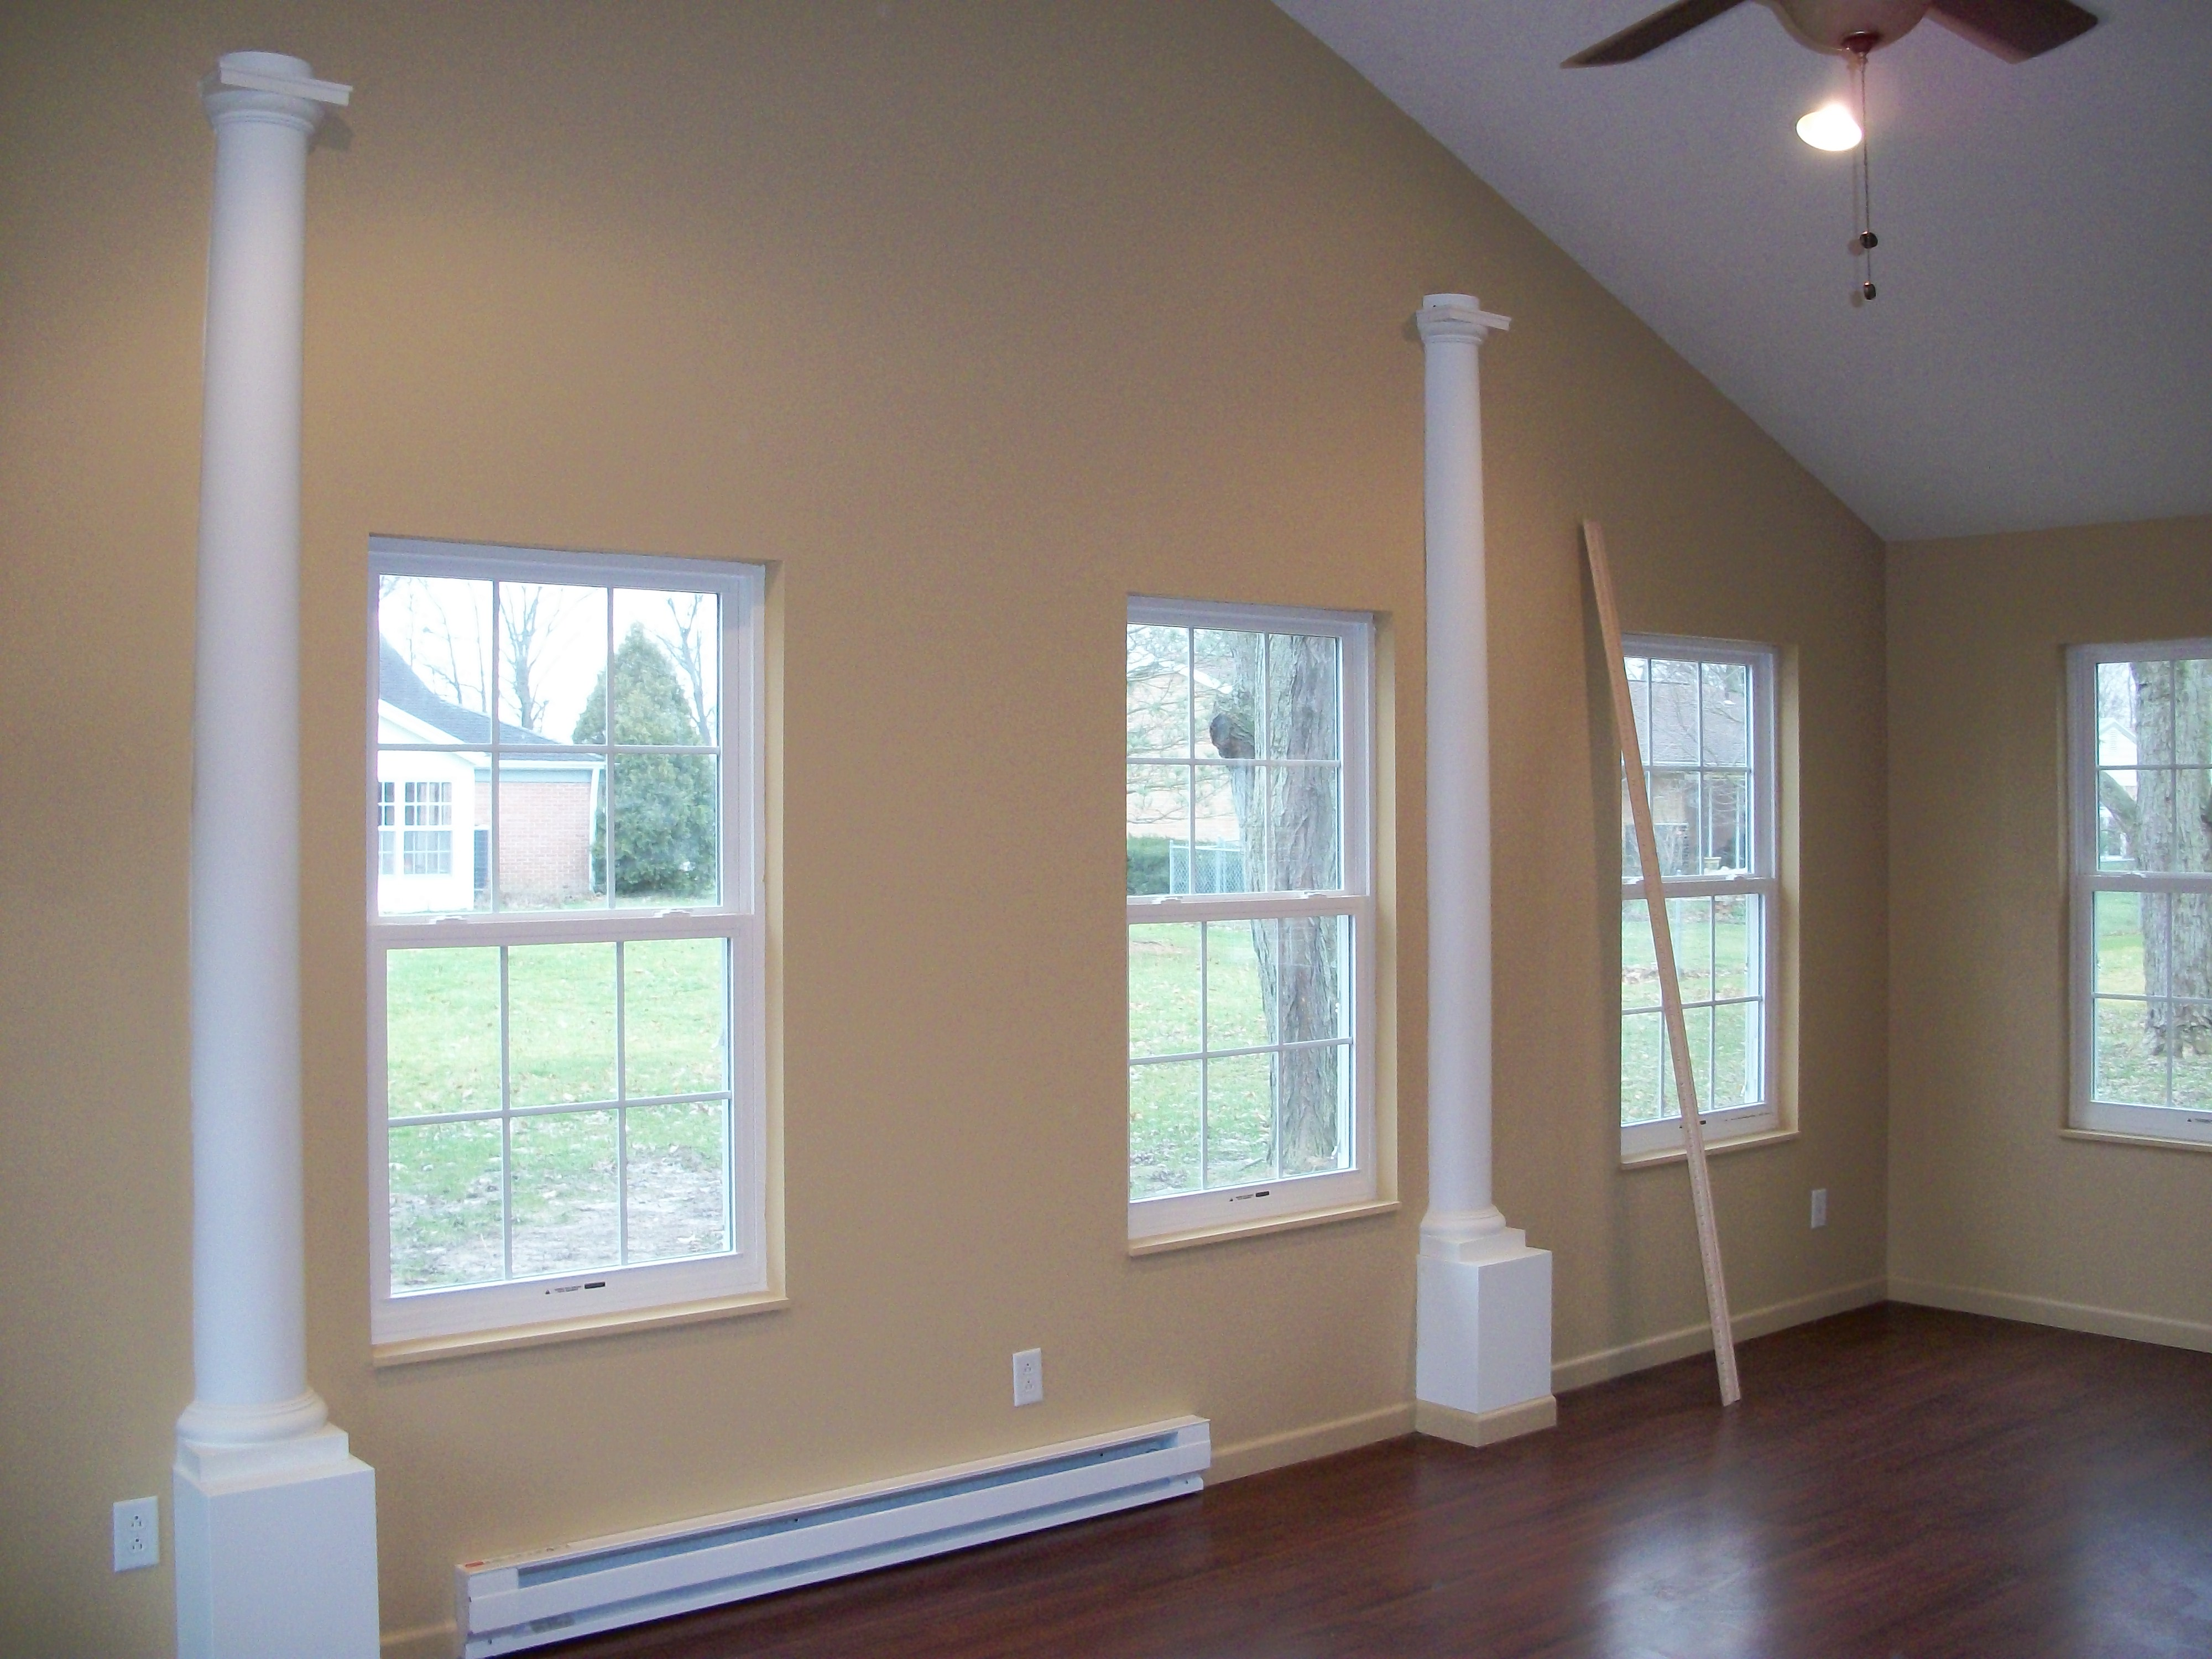 3000 #516C7A Energy Efficient Doors And Windows New Double Pane Windows And Doors  pic Oh Doors 36614000